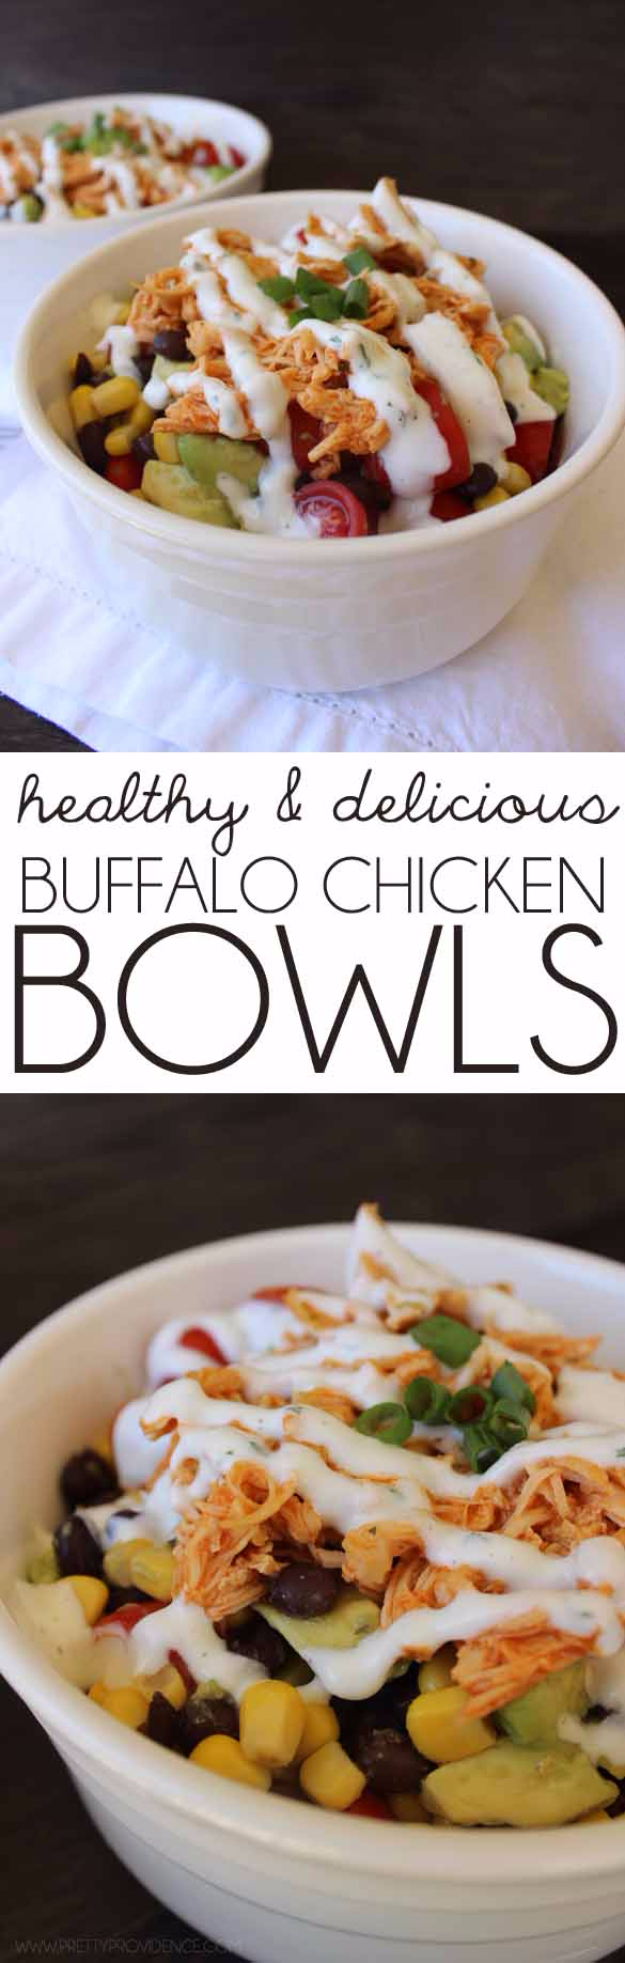 Healthy Lunch Ideas for Work - Healthy Buffalo Chicken Bowls - Quick and Easy Recipes You Can Pack for Lunches at the Office - Lowfat and Simple Ideas for Eating on the Job - Microwave, No Heat, Mason Jar Salads, Sandwiches, Wraps, Soups and Bowls